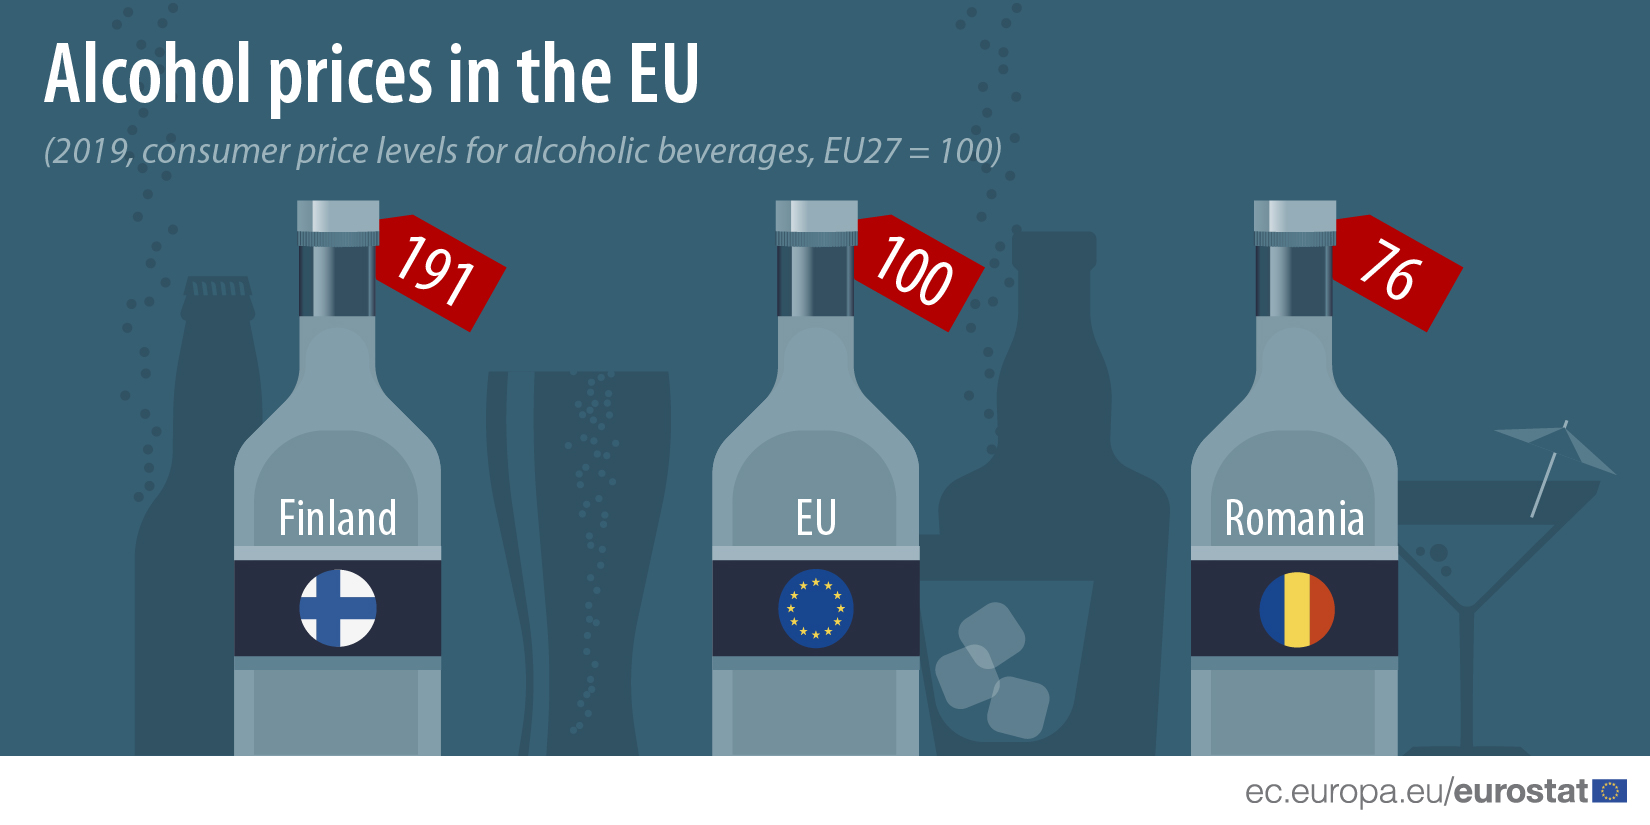 Alcohol prices in the EU, 2019